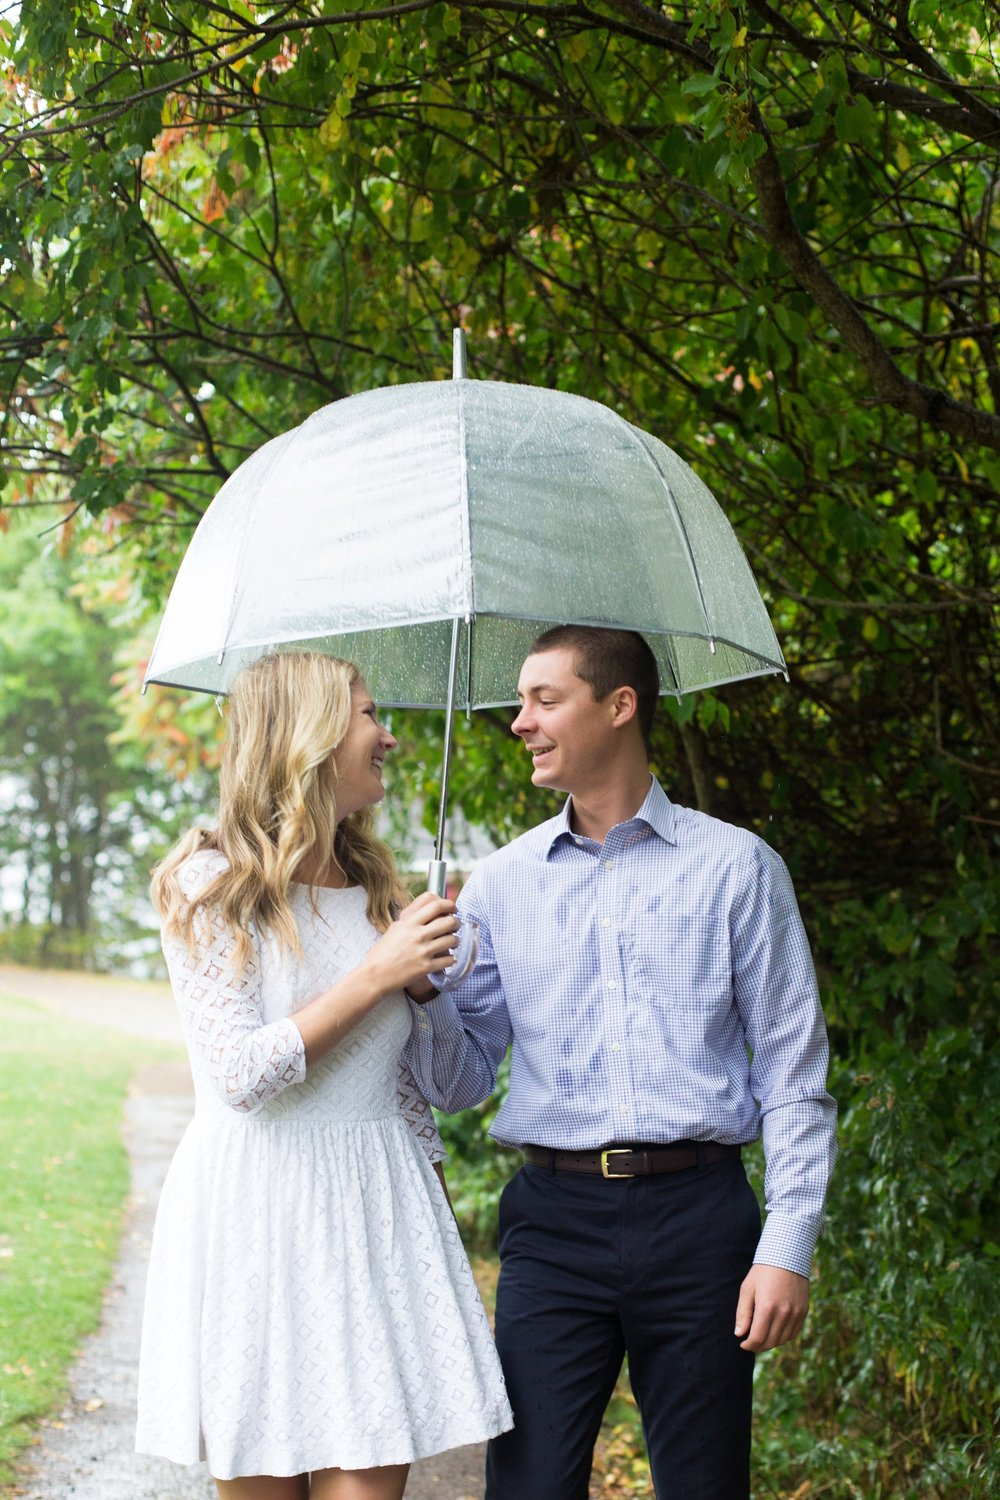 engagement photos taken in rain